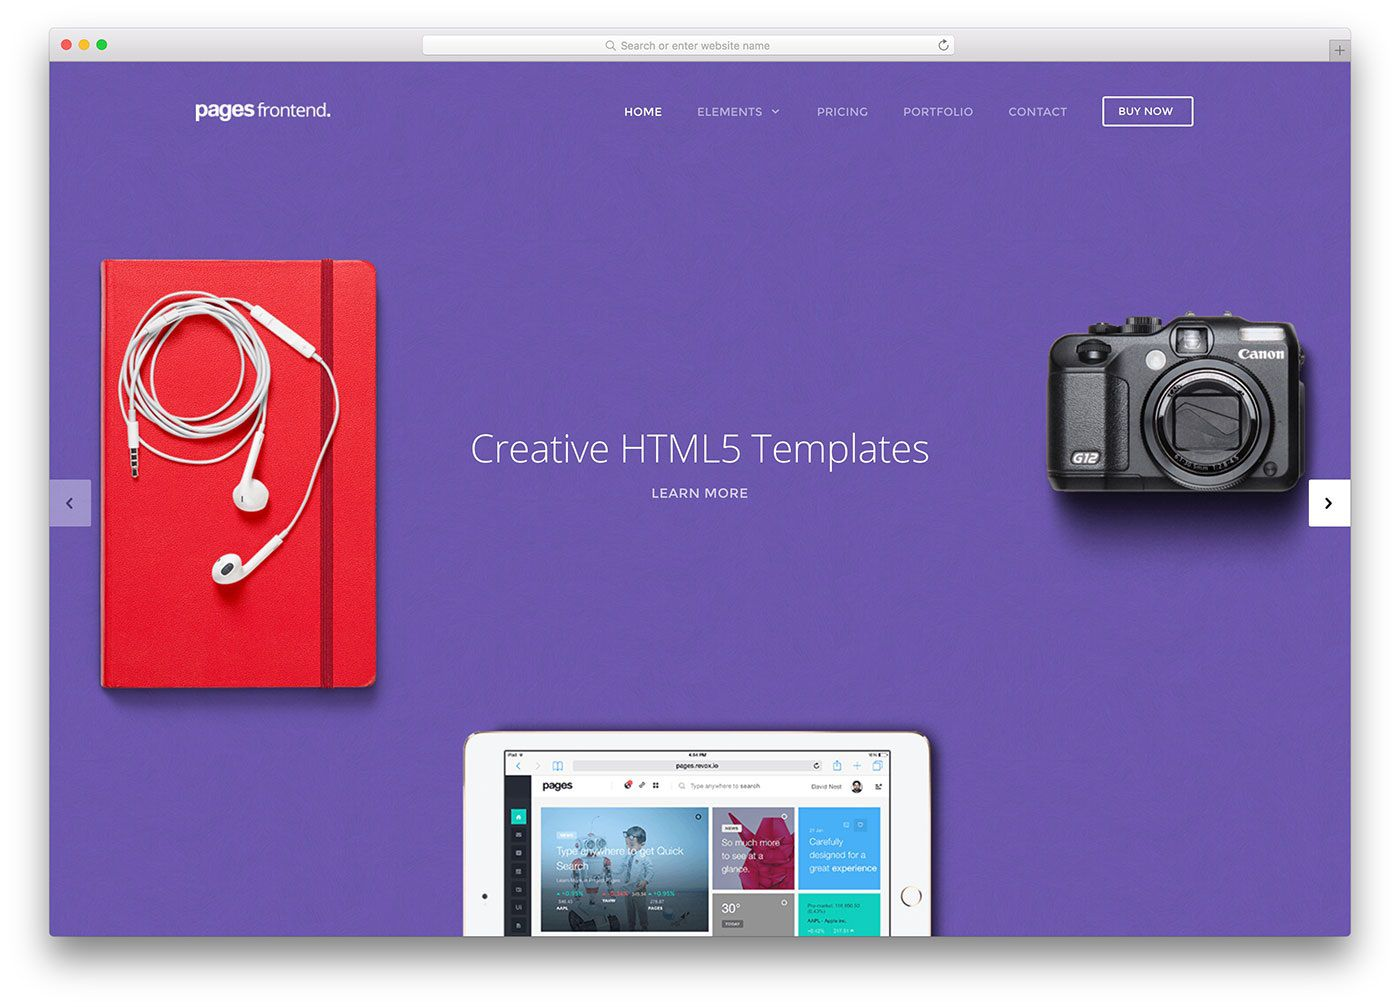 003 Magnificent Download Web Template Html5 Inspiration  Photography Website Free Logistic BusinesFull